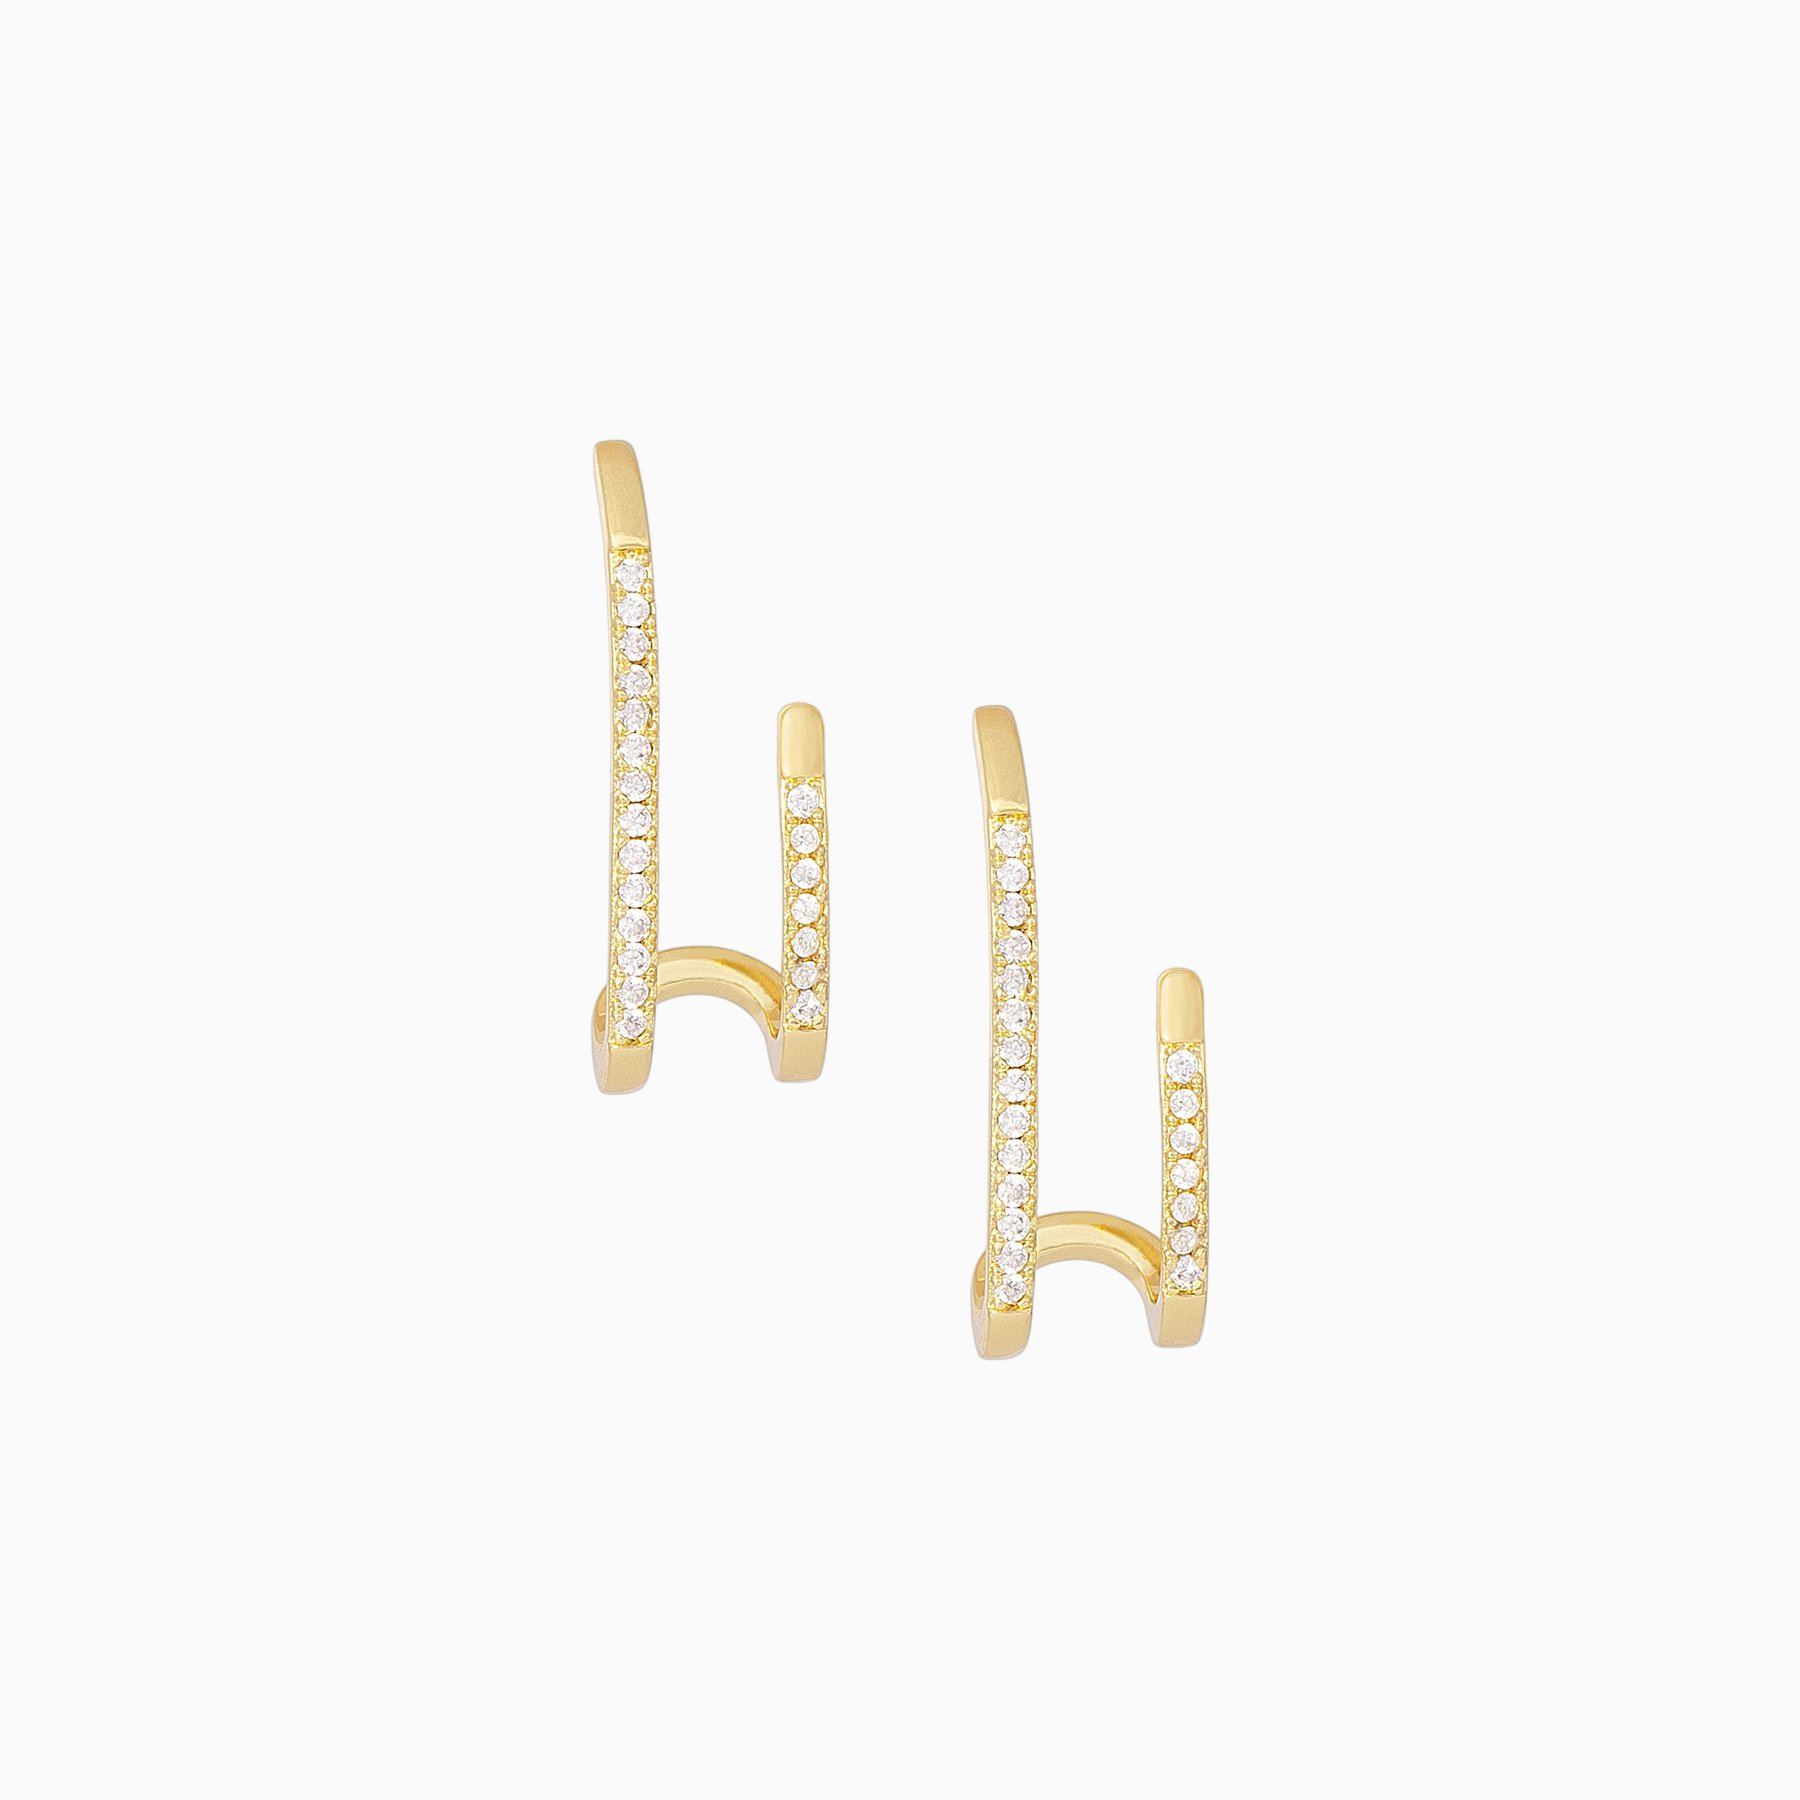 Uncommon James: Double Vision Ear Climber Earrings - Gold